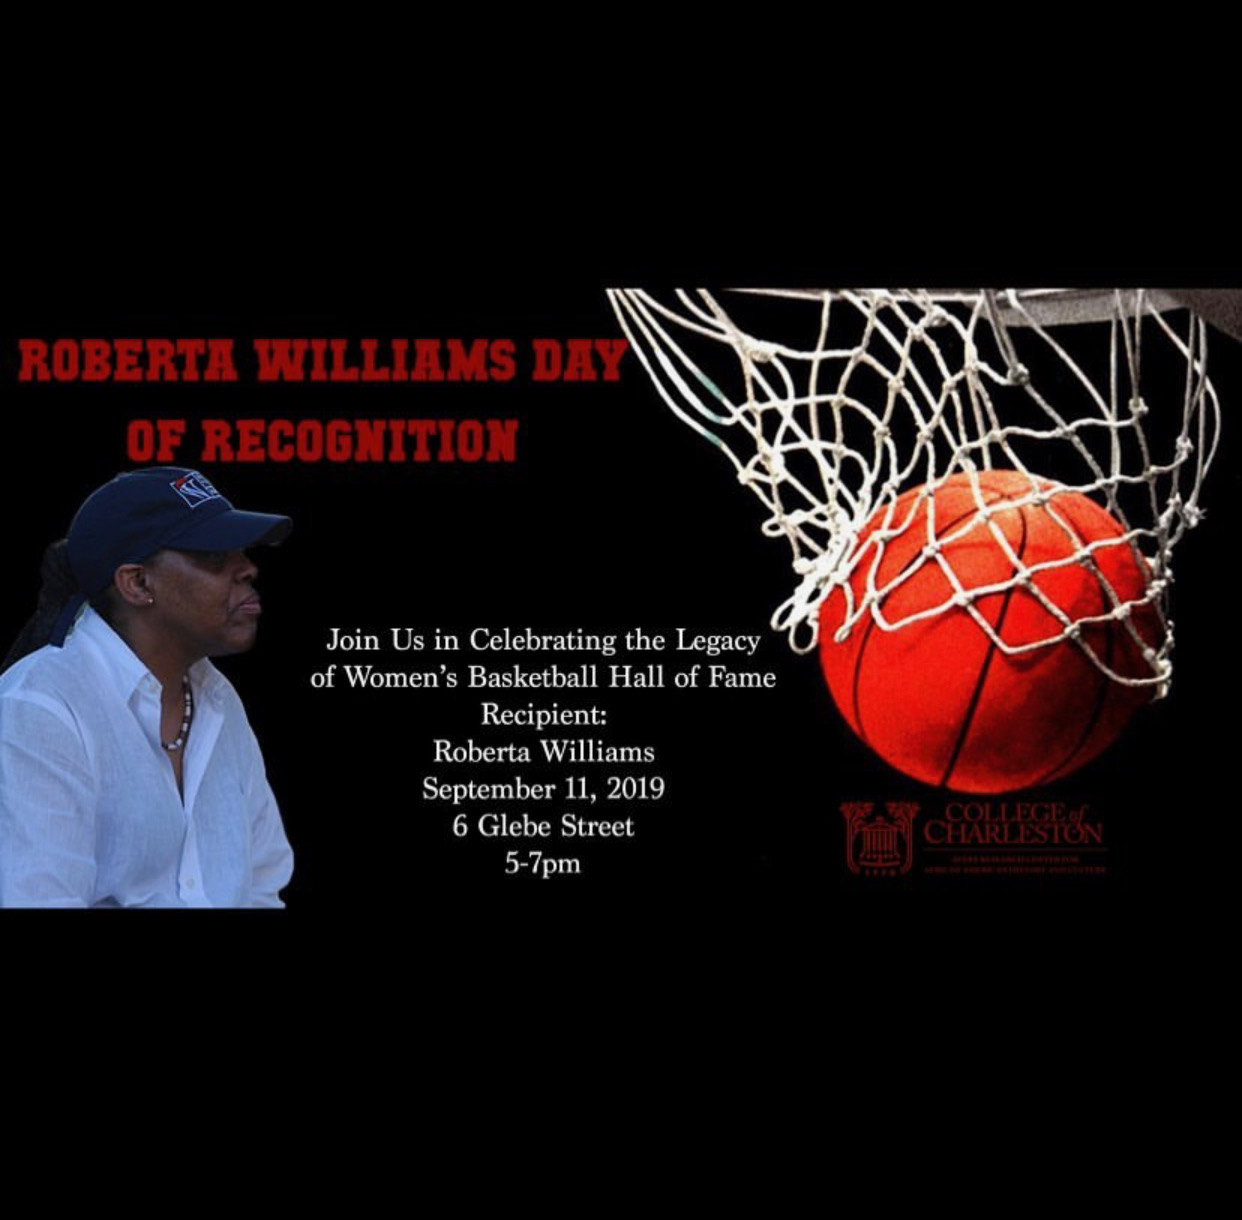 Roberta Williams Day of Recognition